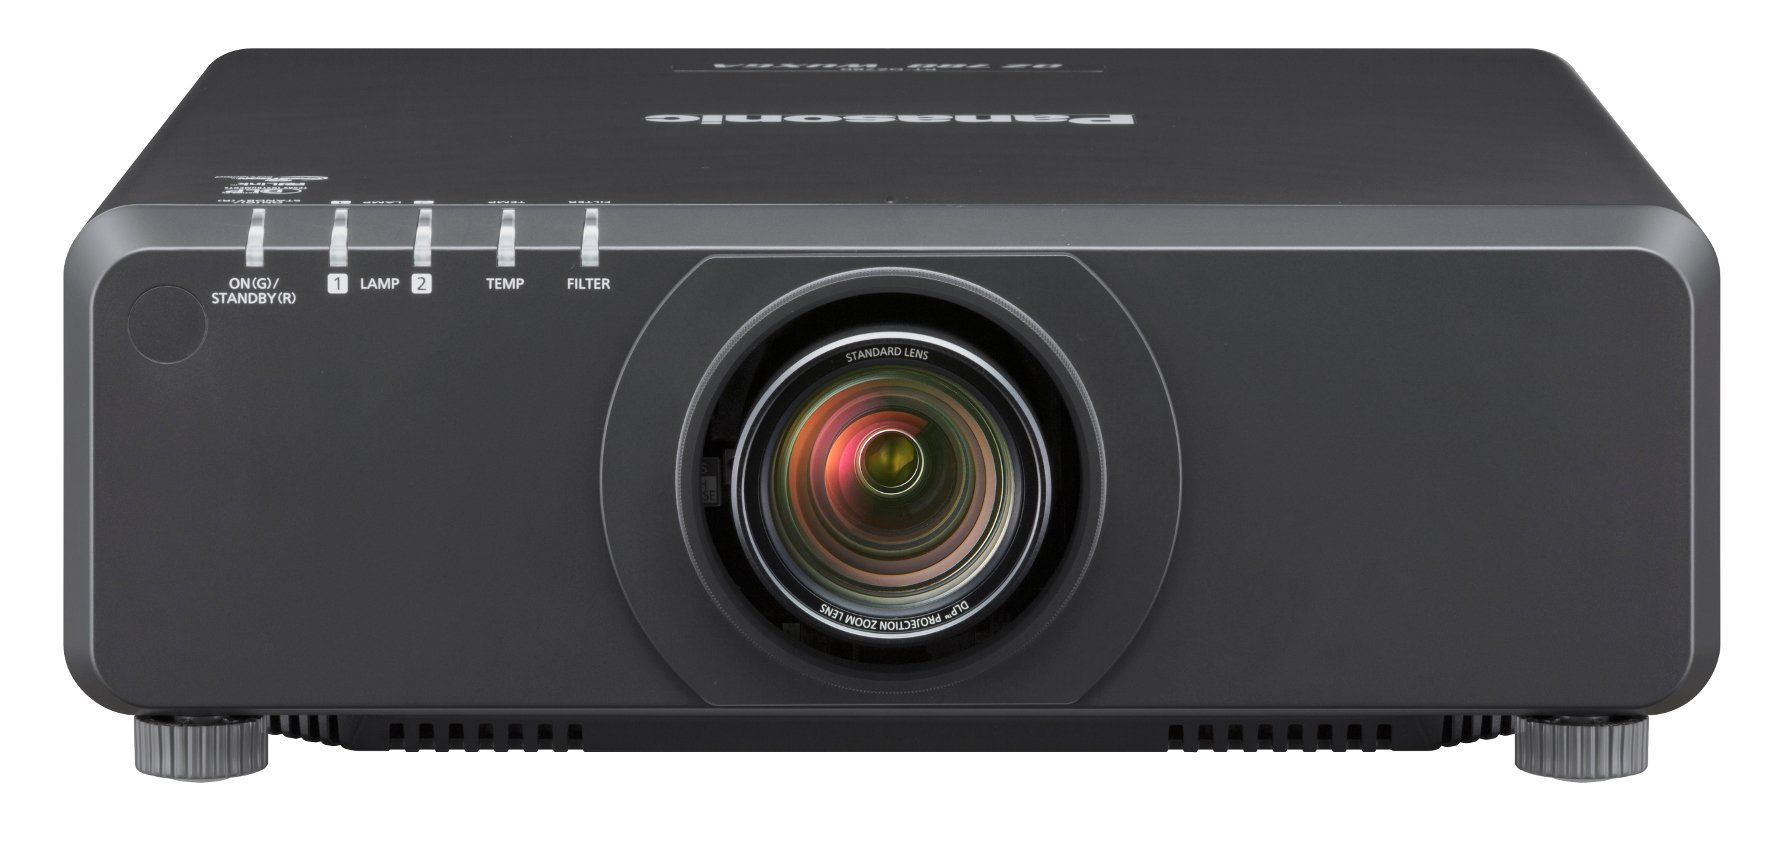 8200 Lumen WXGA 1-Chip DLP Projector in Black Without Lens